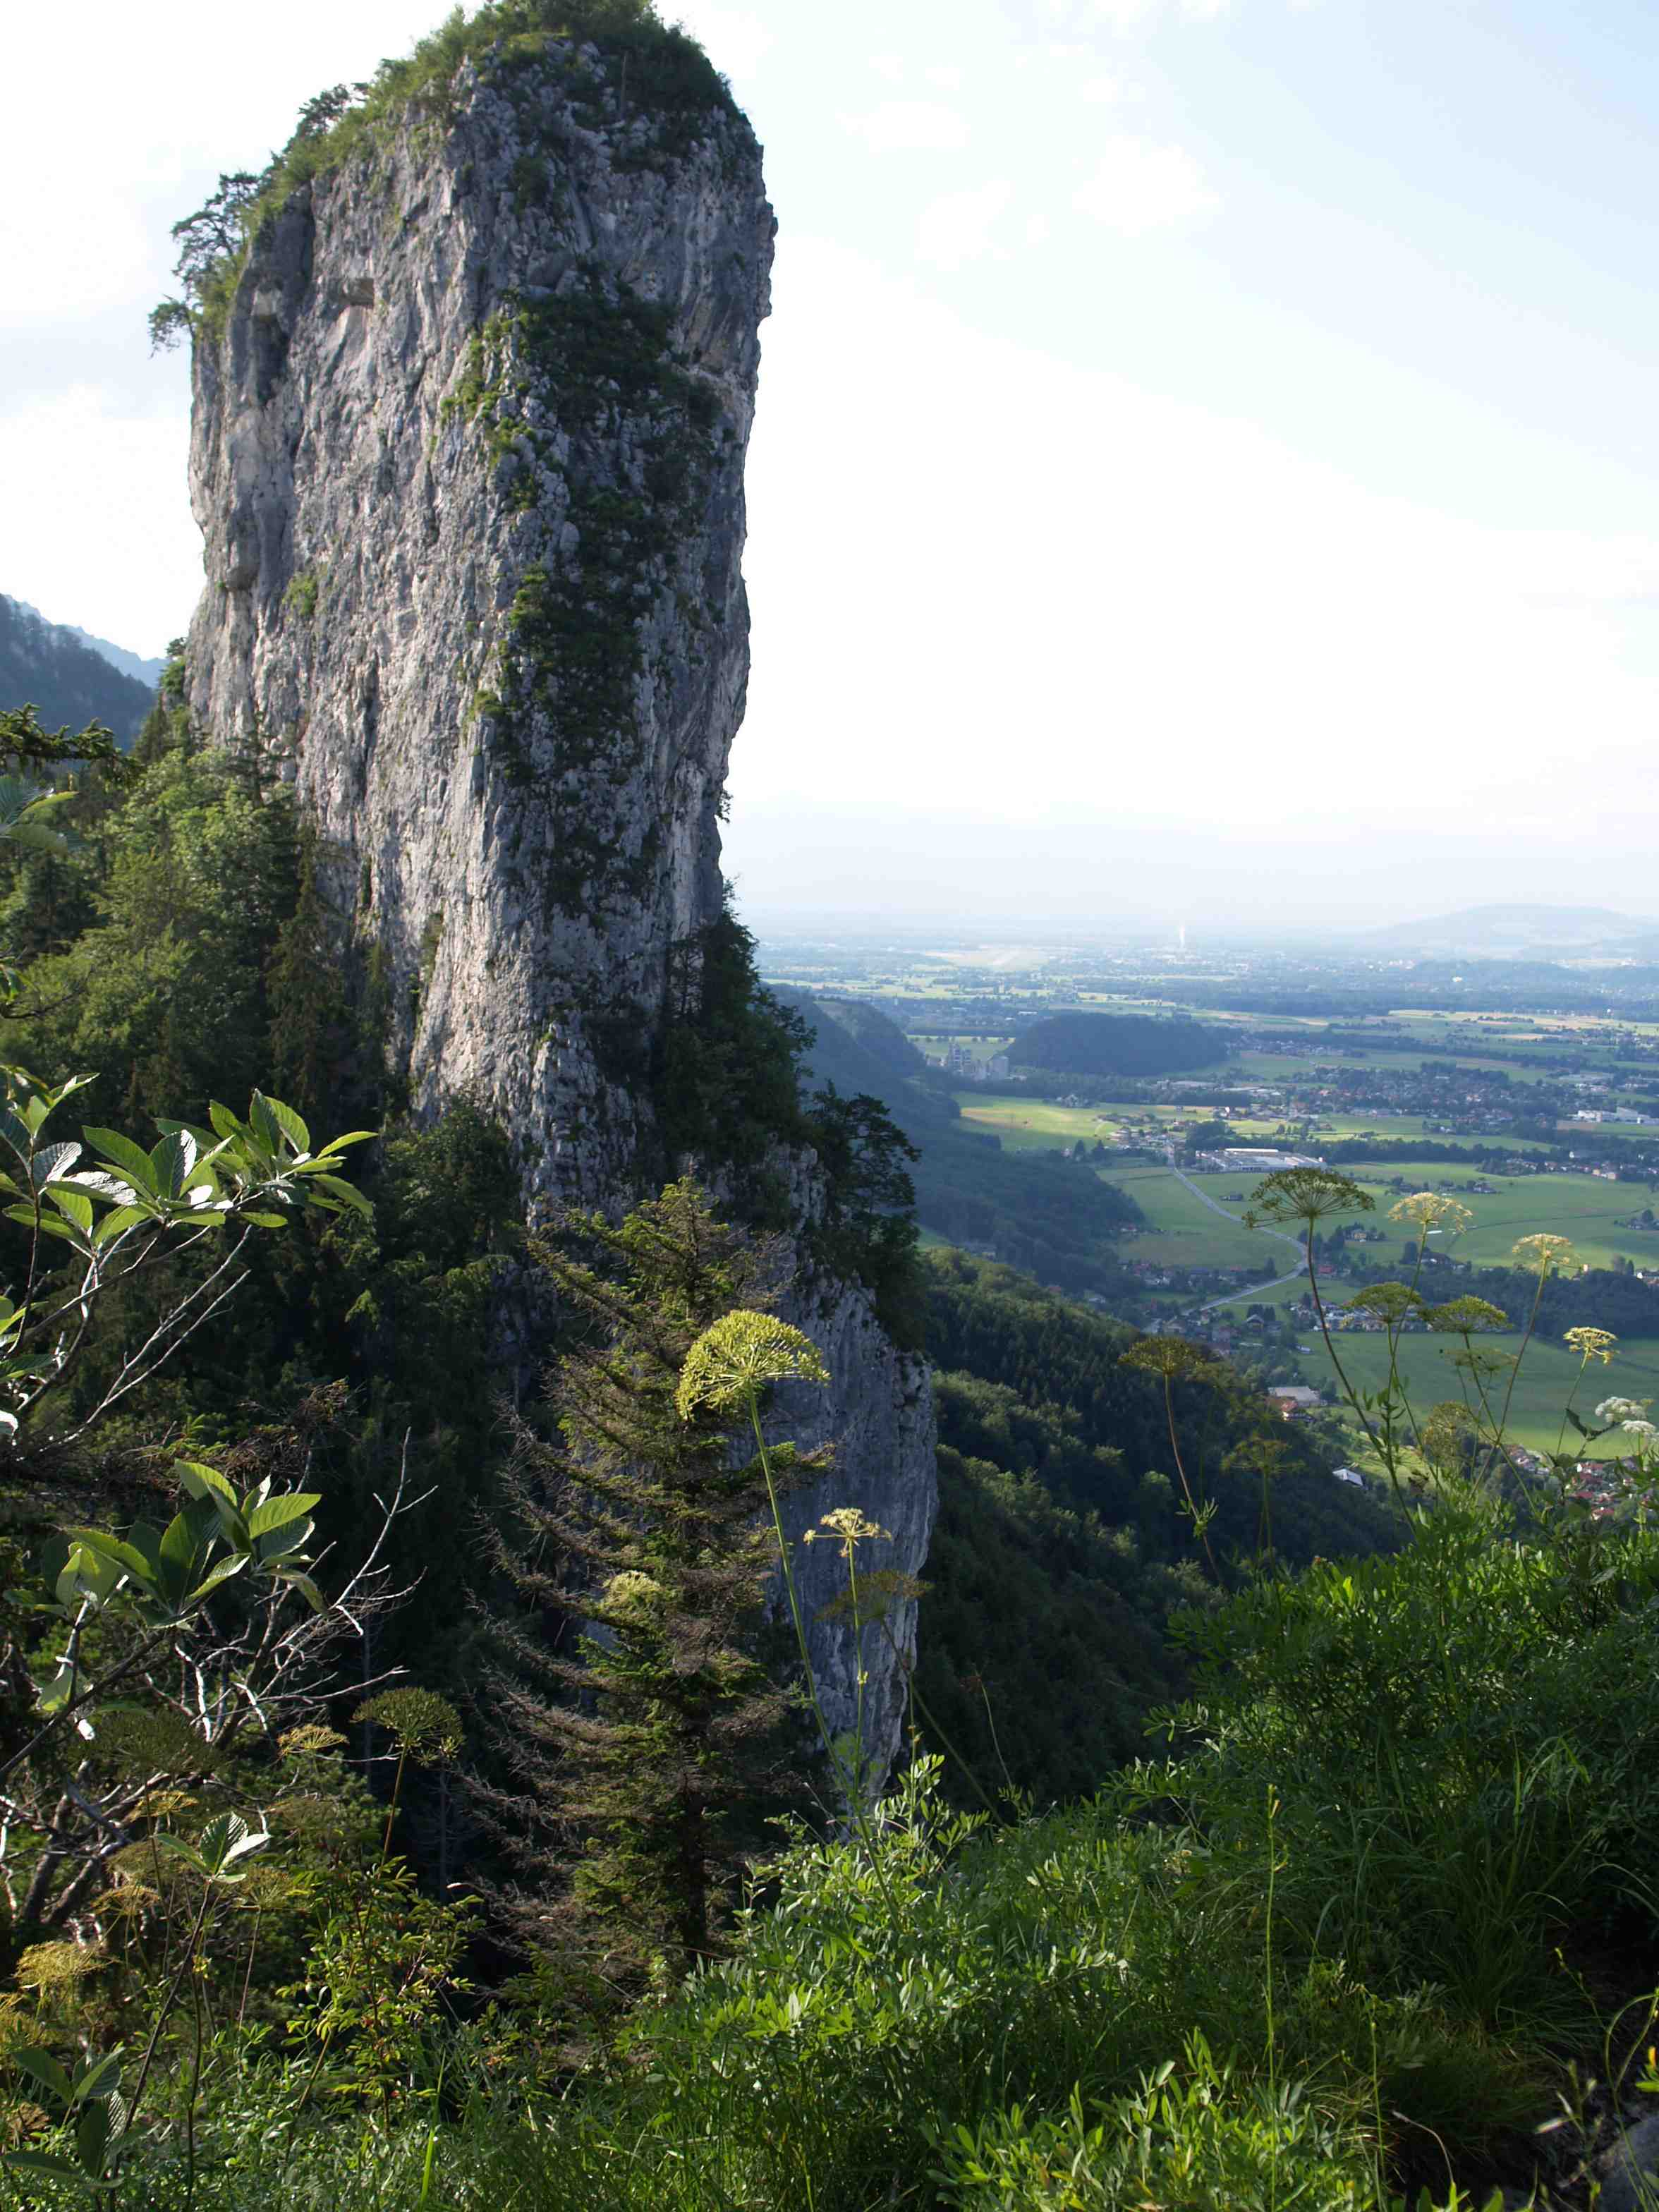 Mt Barmstein Salzburg background Jura FT